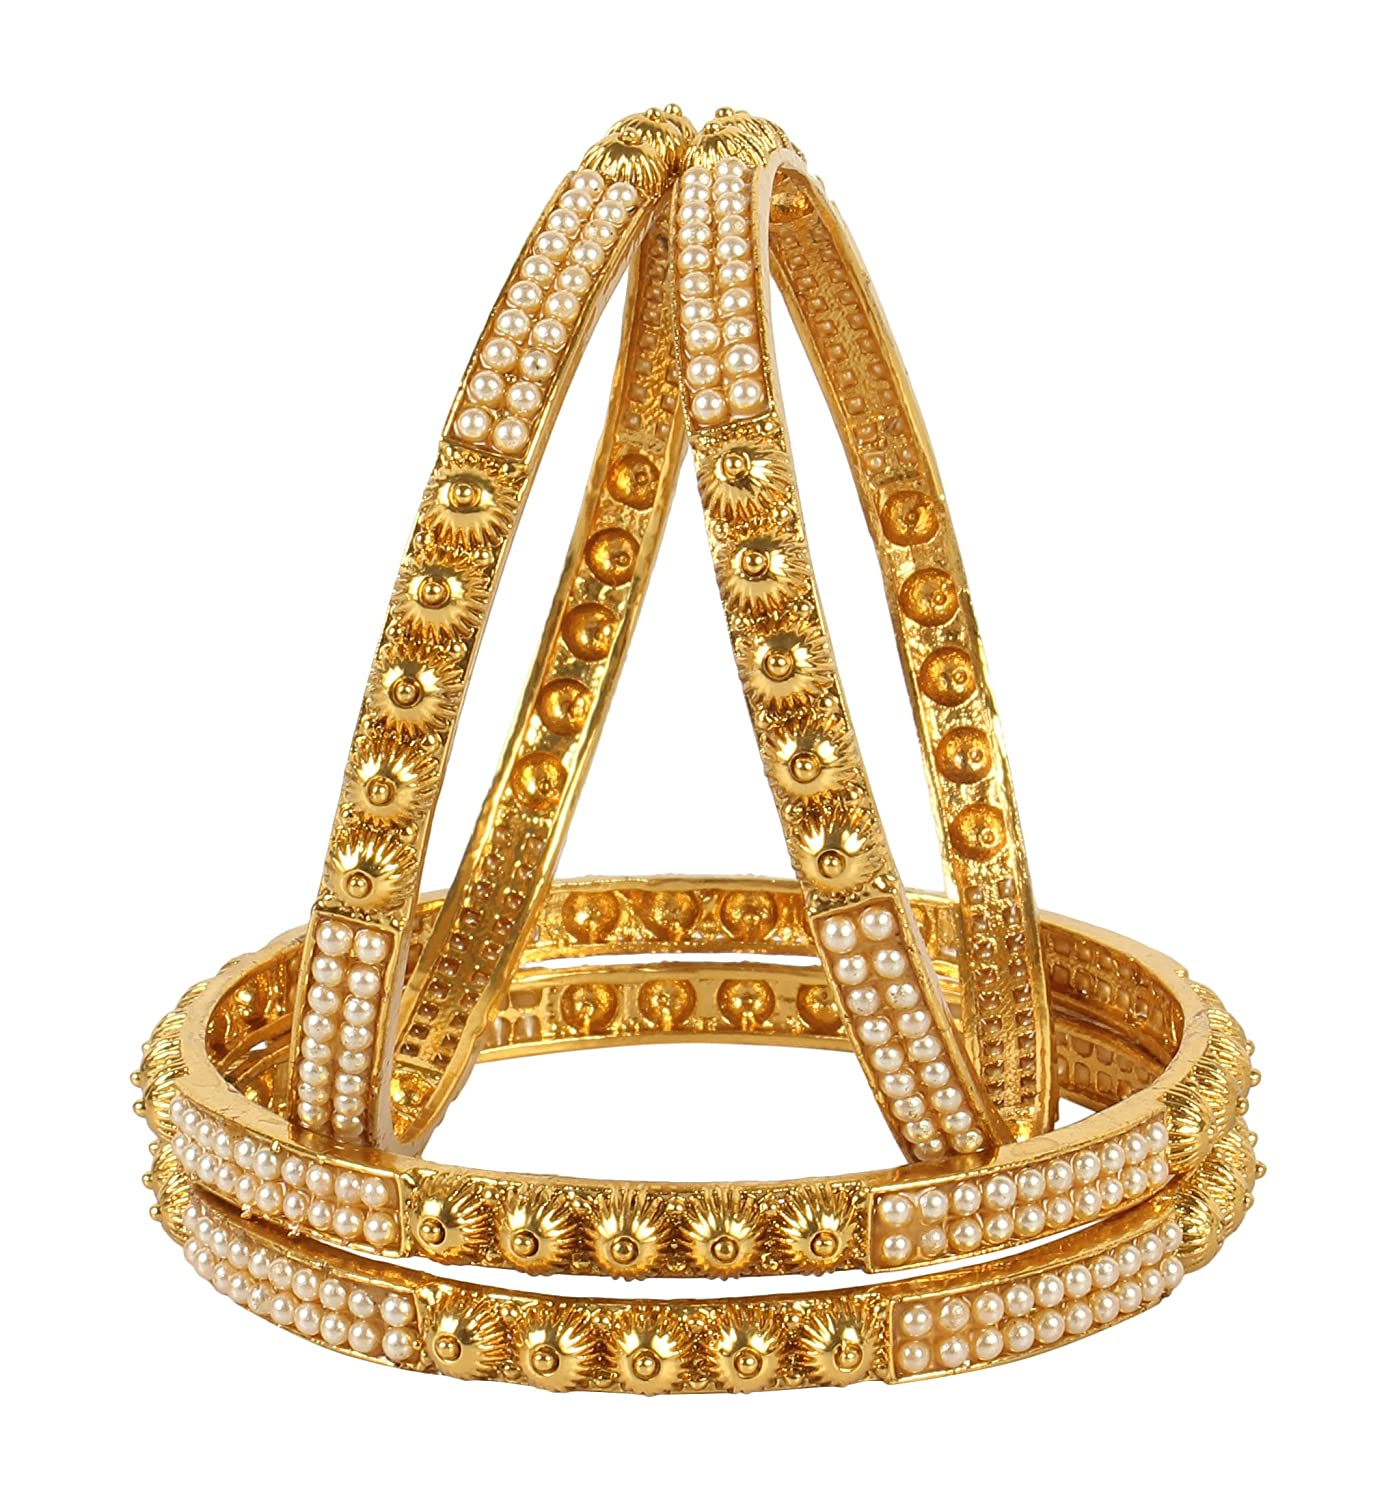 MUCH-MORE Lovely Indian Polki Bangles Traditional Partywear Jewelry 2.4) PB-337